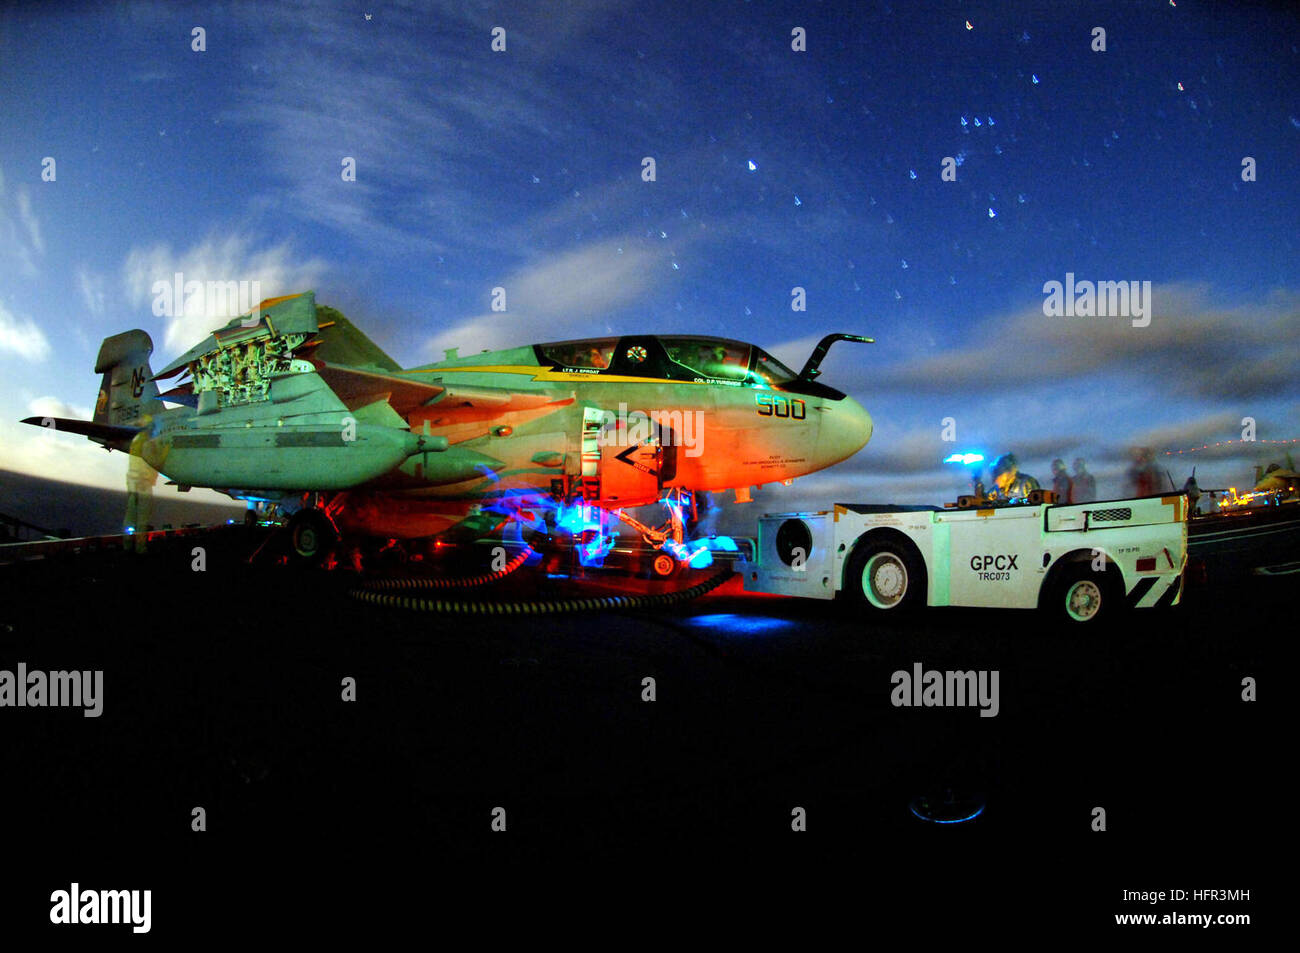 060316-N-6213R-001 Pacific Ocean (March 16, 2006) - Pilots sit in an EA-6B Prowler assigned the 'Vikings' - Stock Image